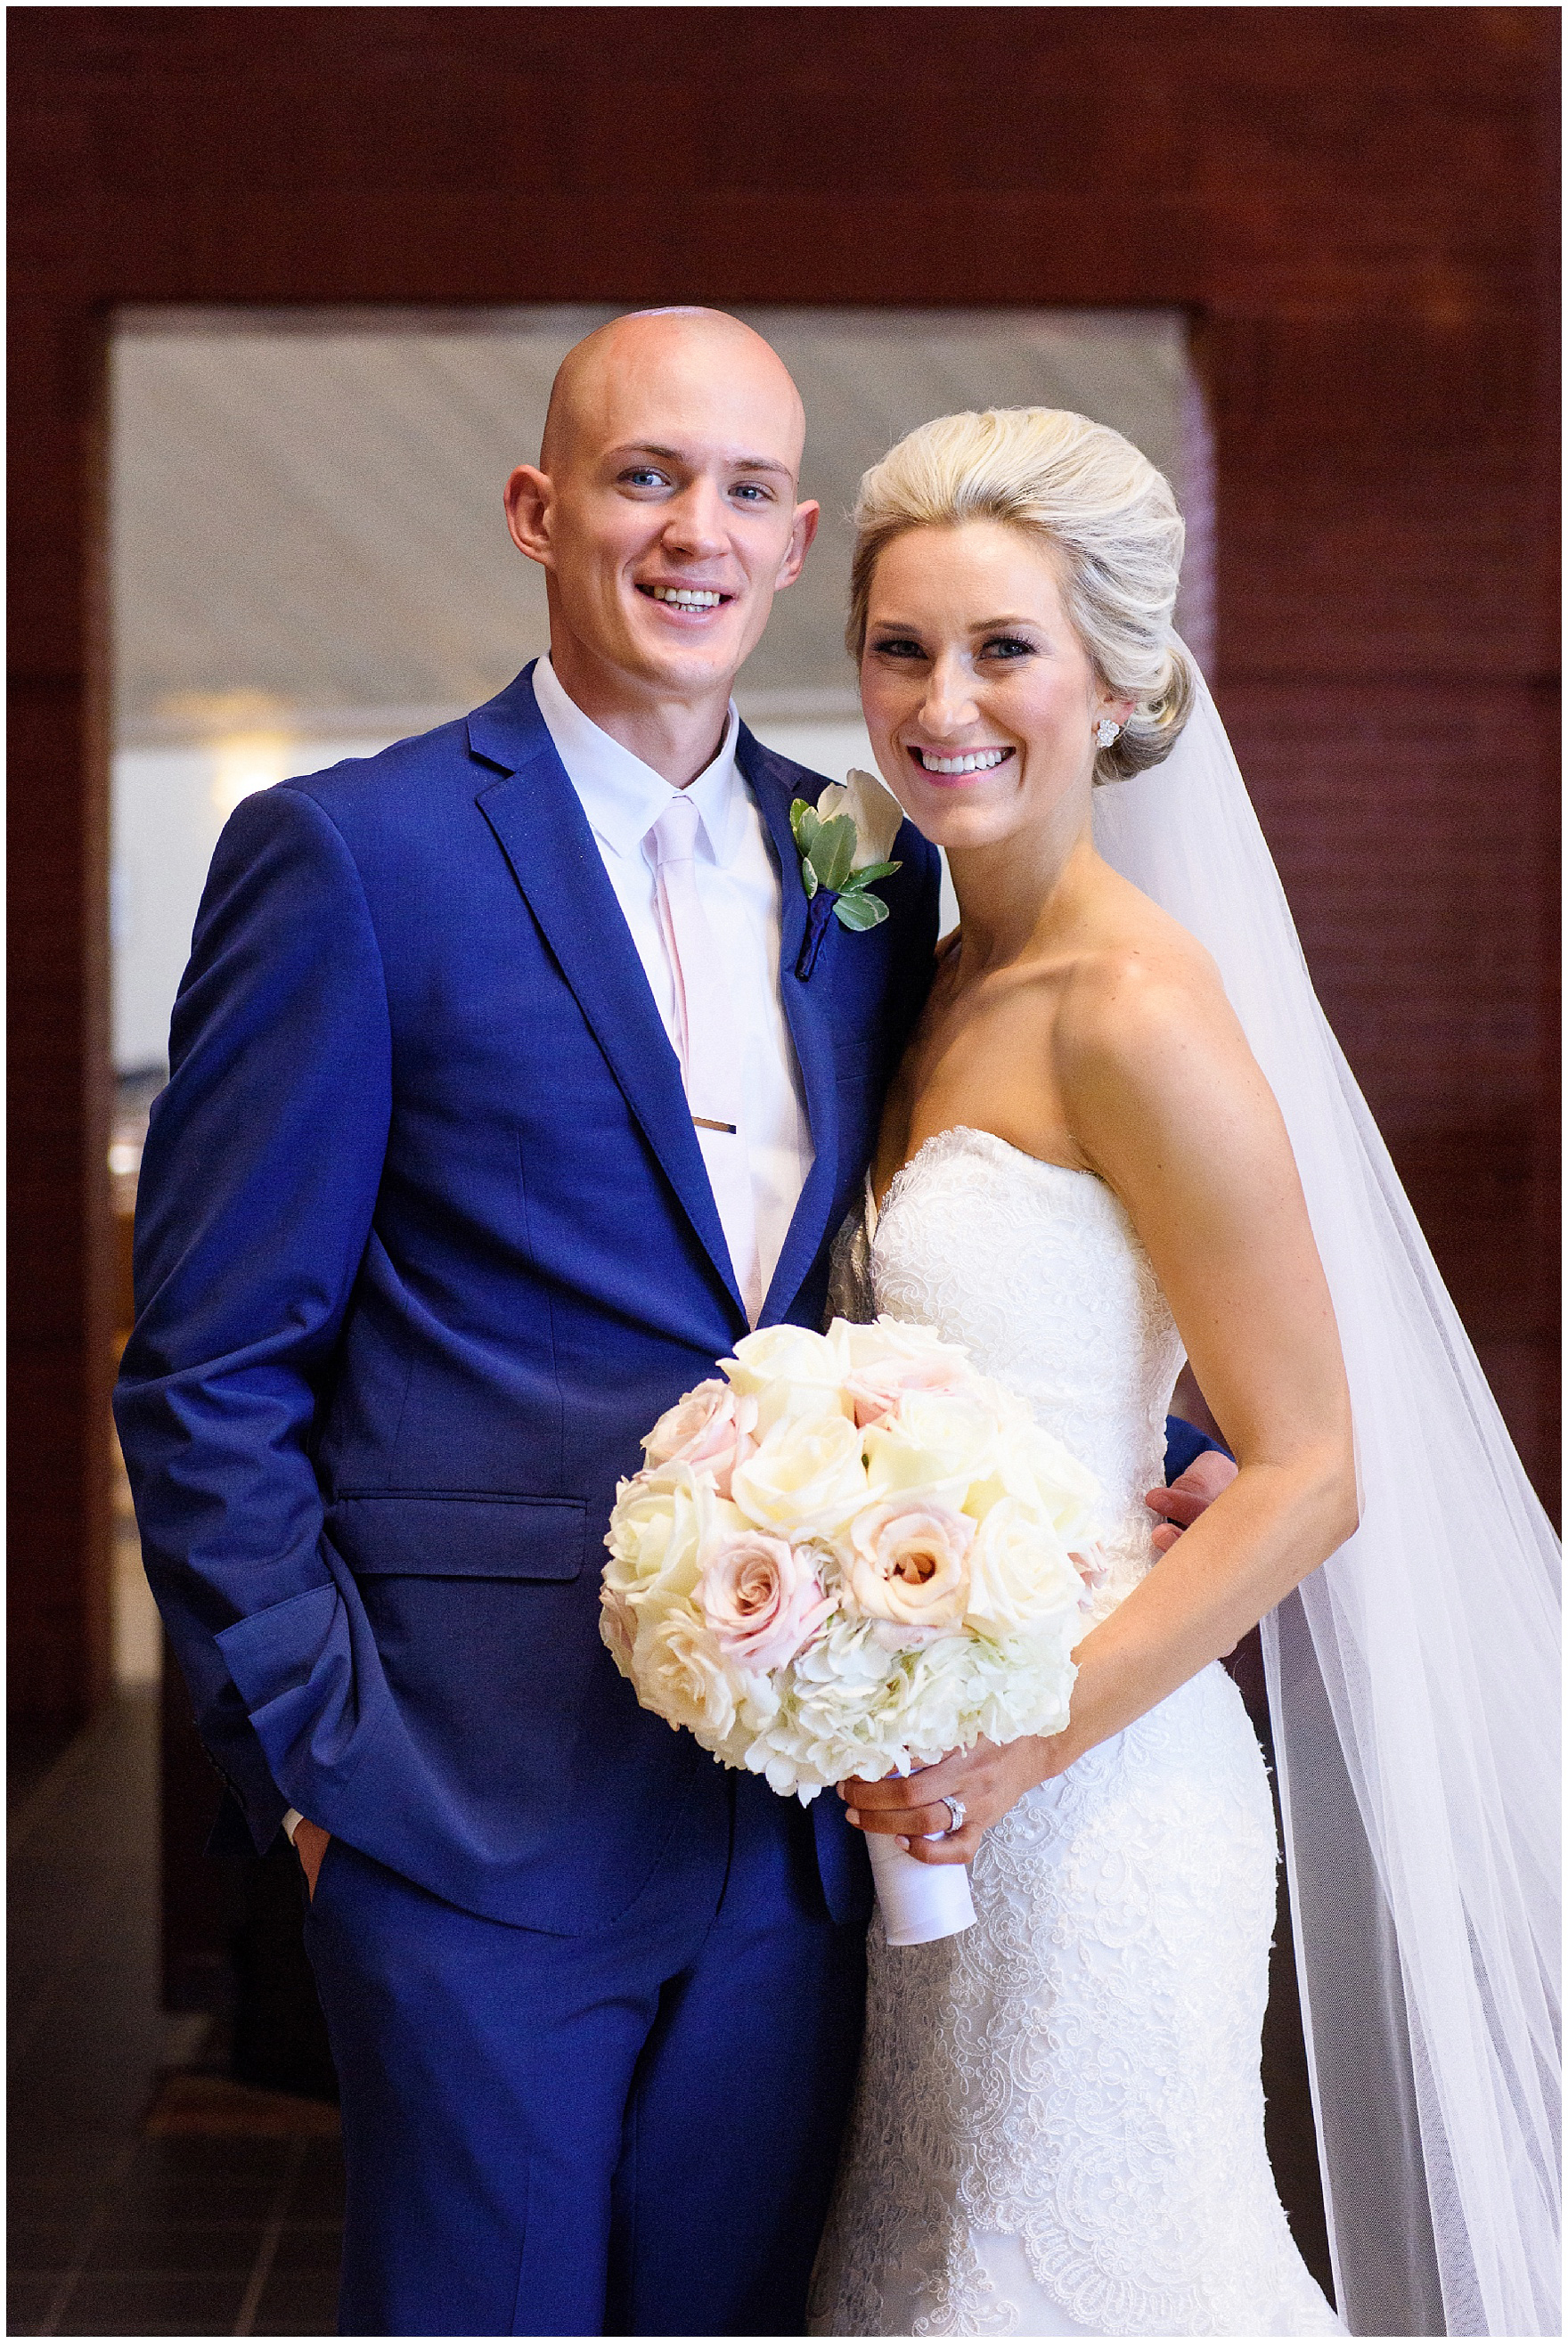 The bride and groom pose after the ceremony for a St. Josephs Downers Grove Pinstripes Oak Brook, Illinois wedding.